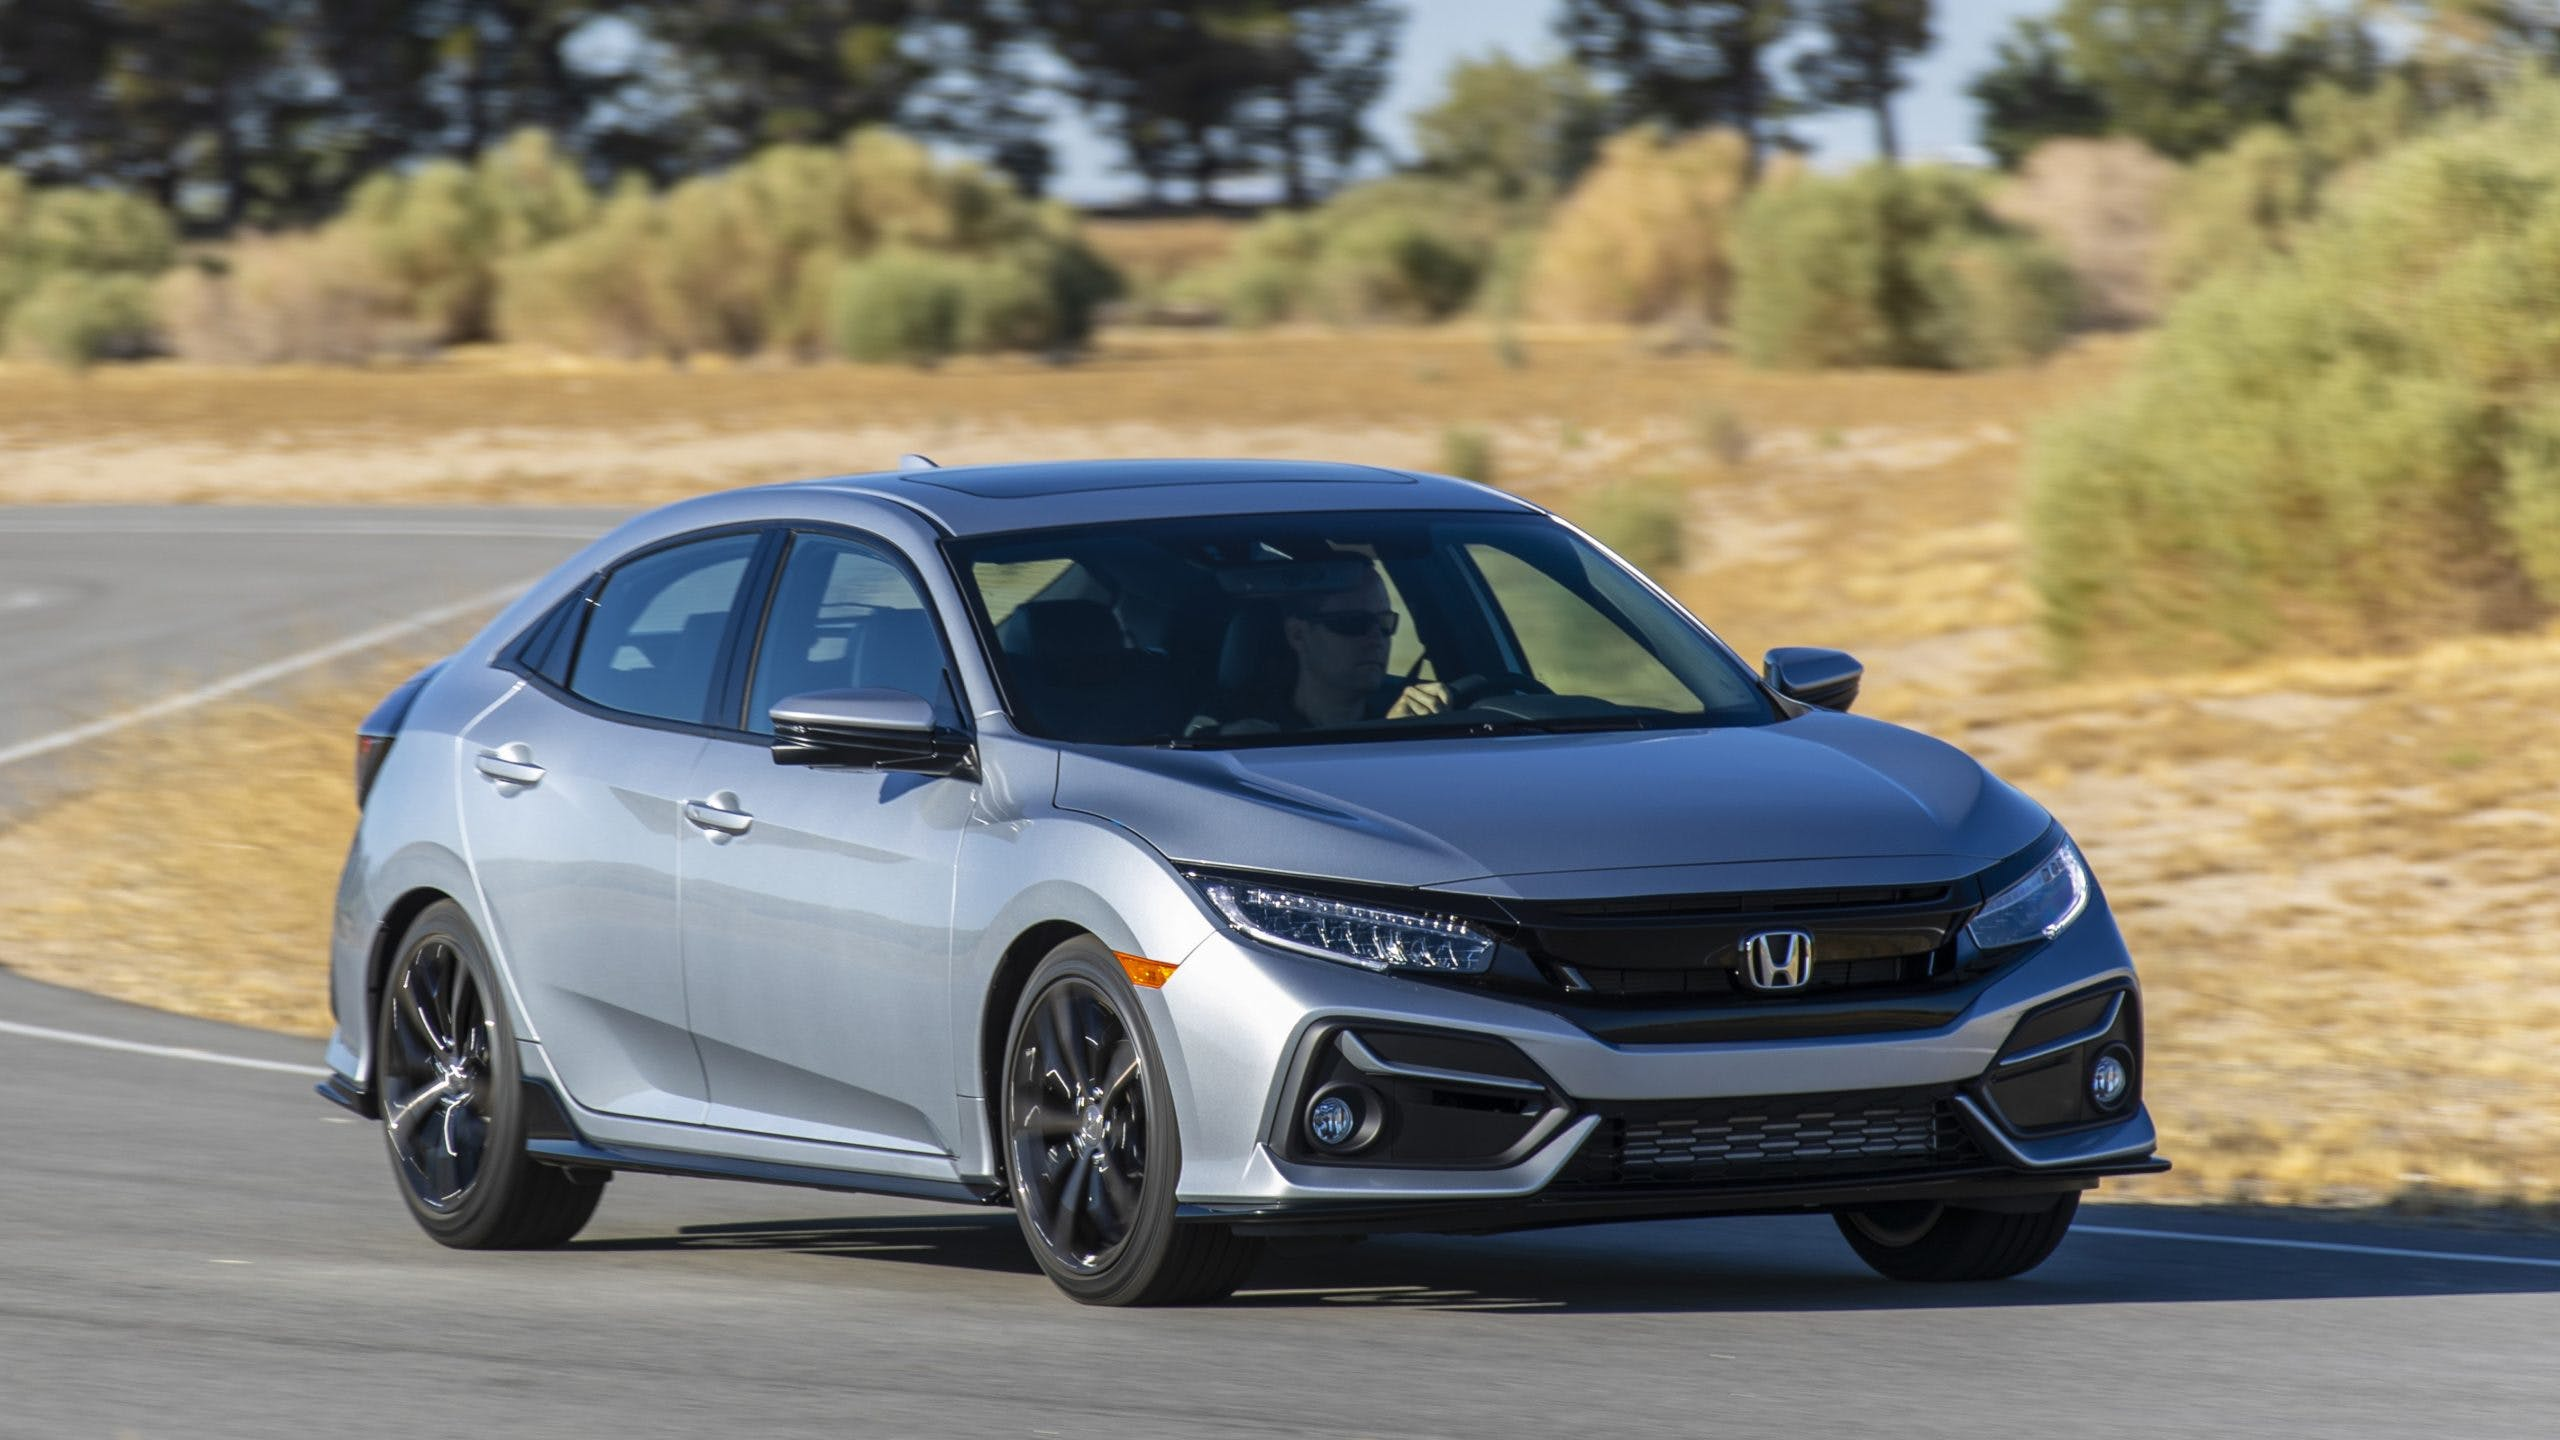 2020 Honda Civic Hatchback | Test Drive Review